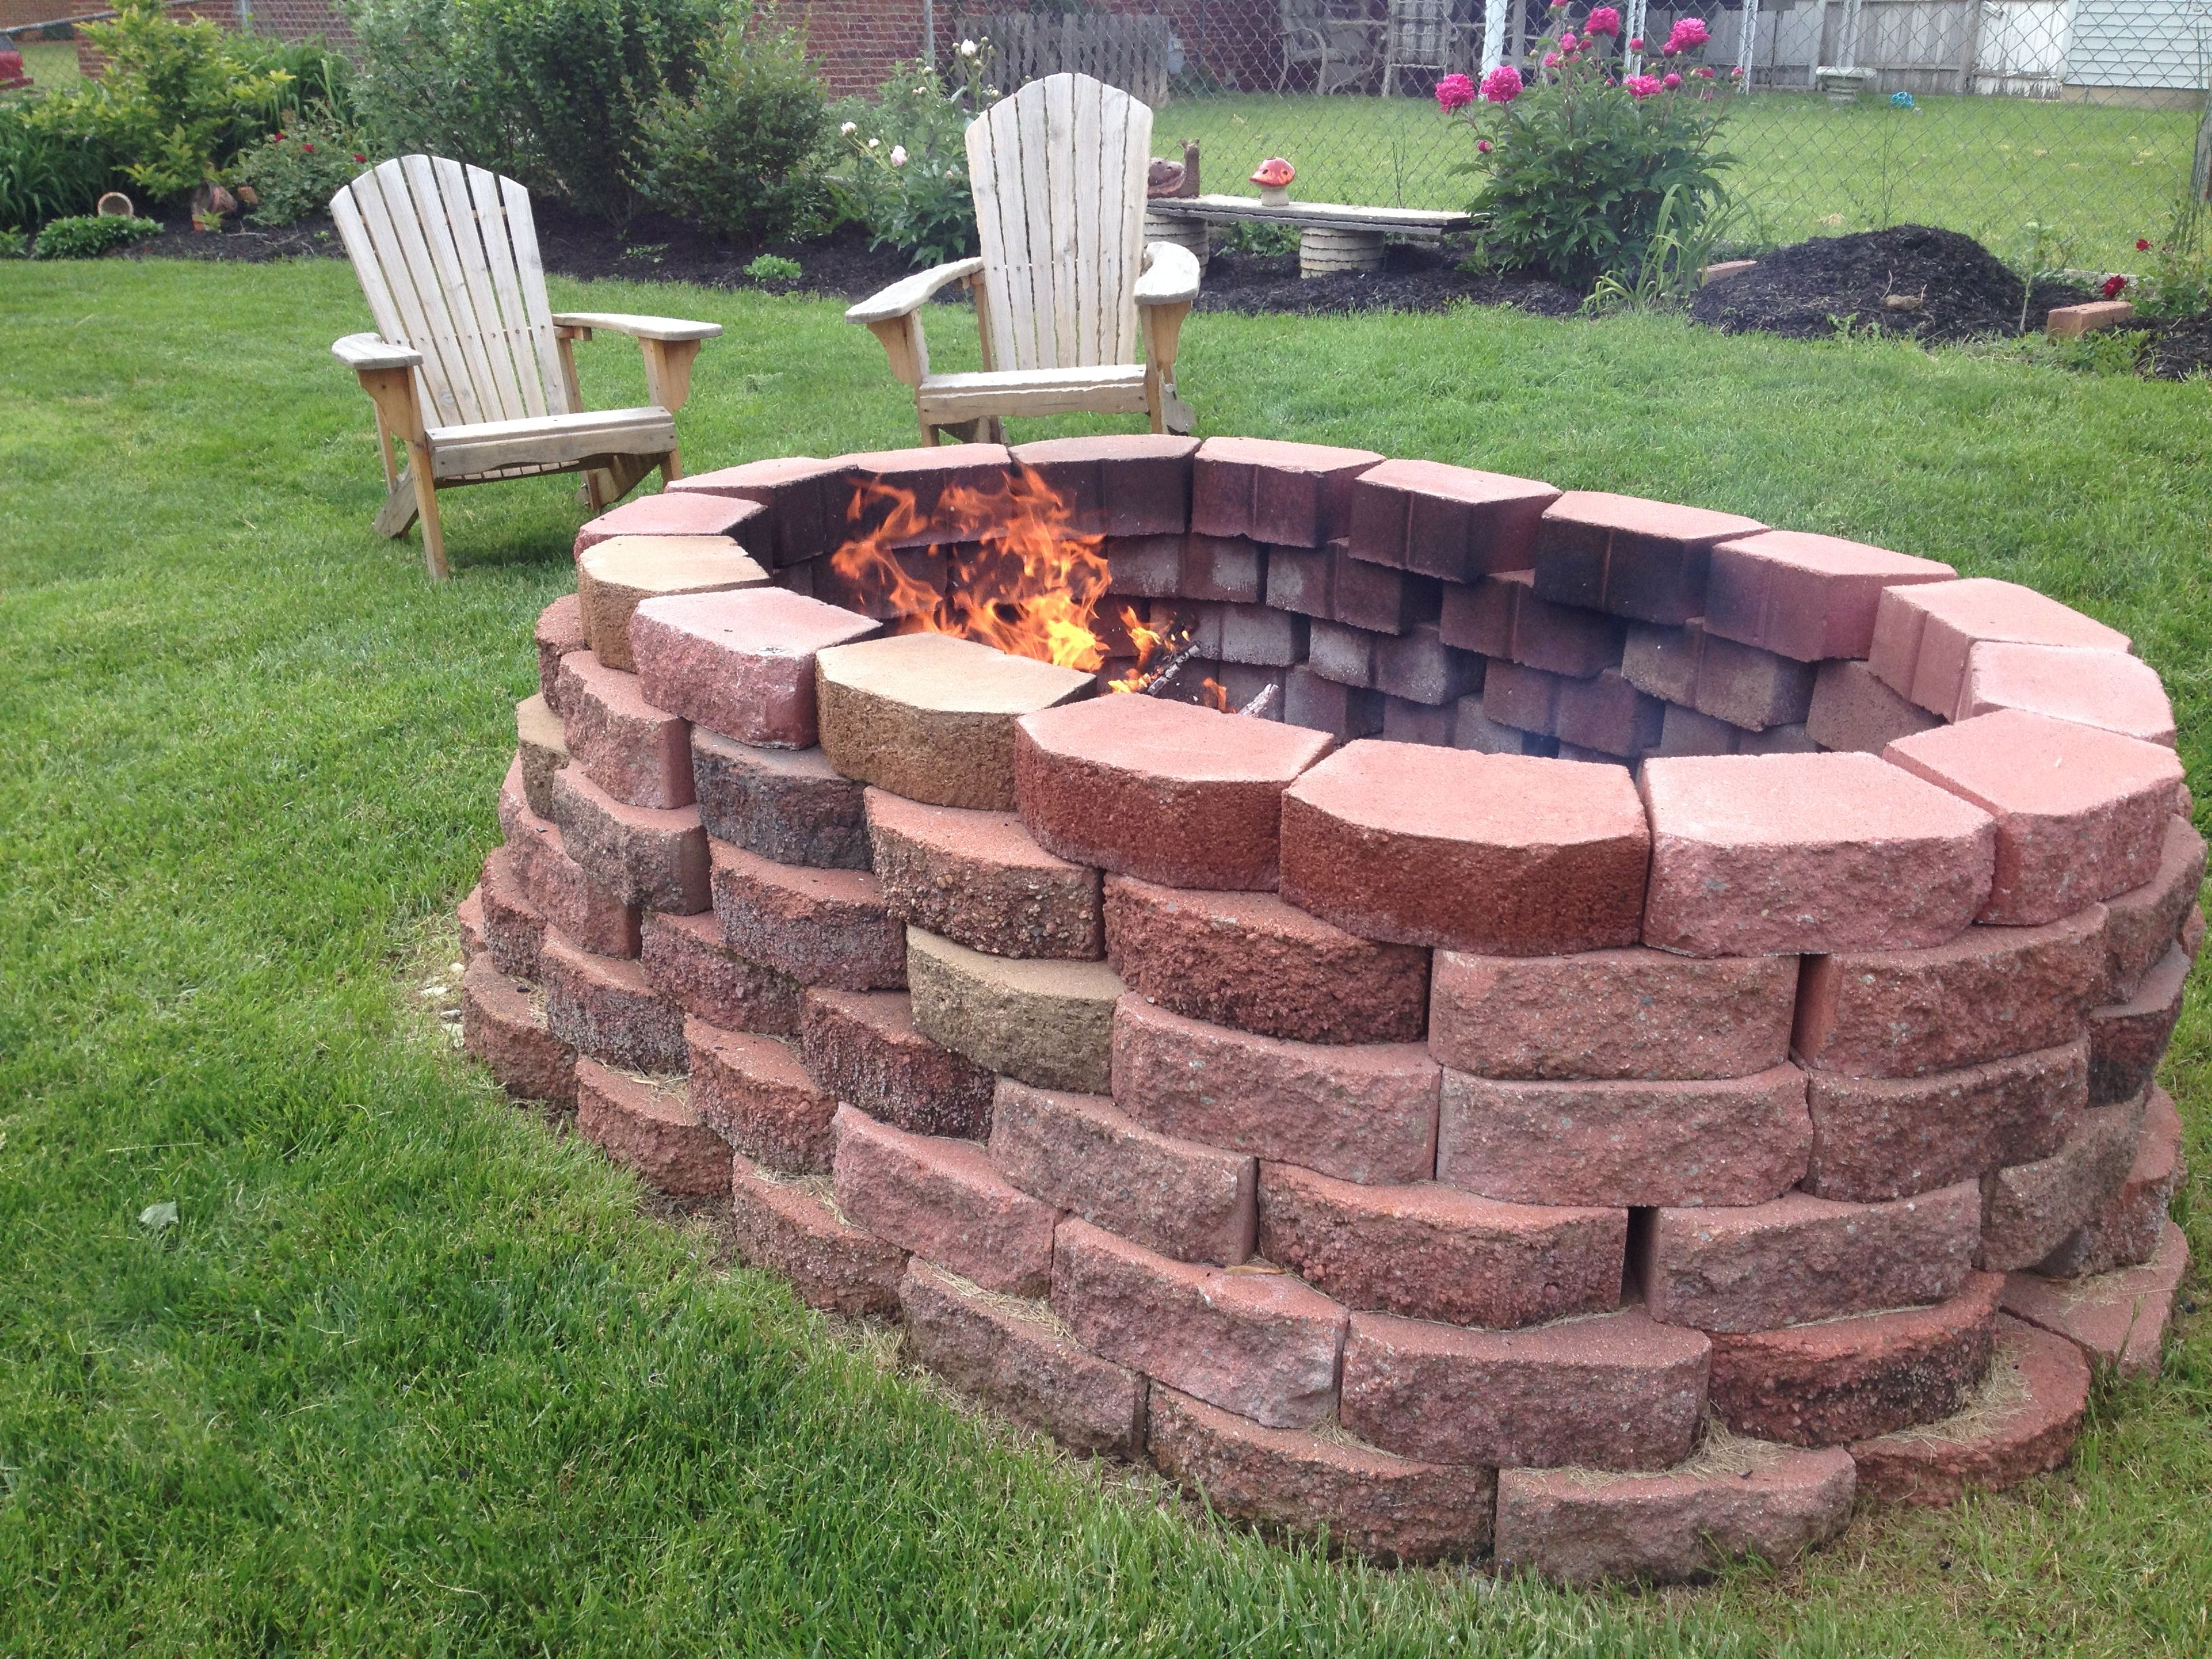 Do it yourself firepit great weekend project you buy